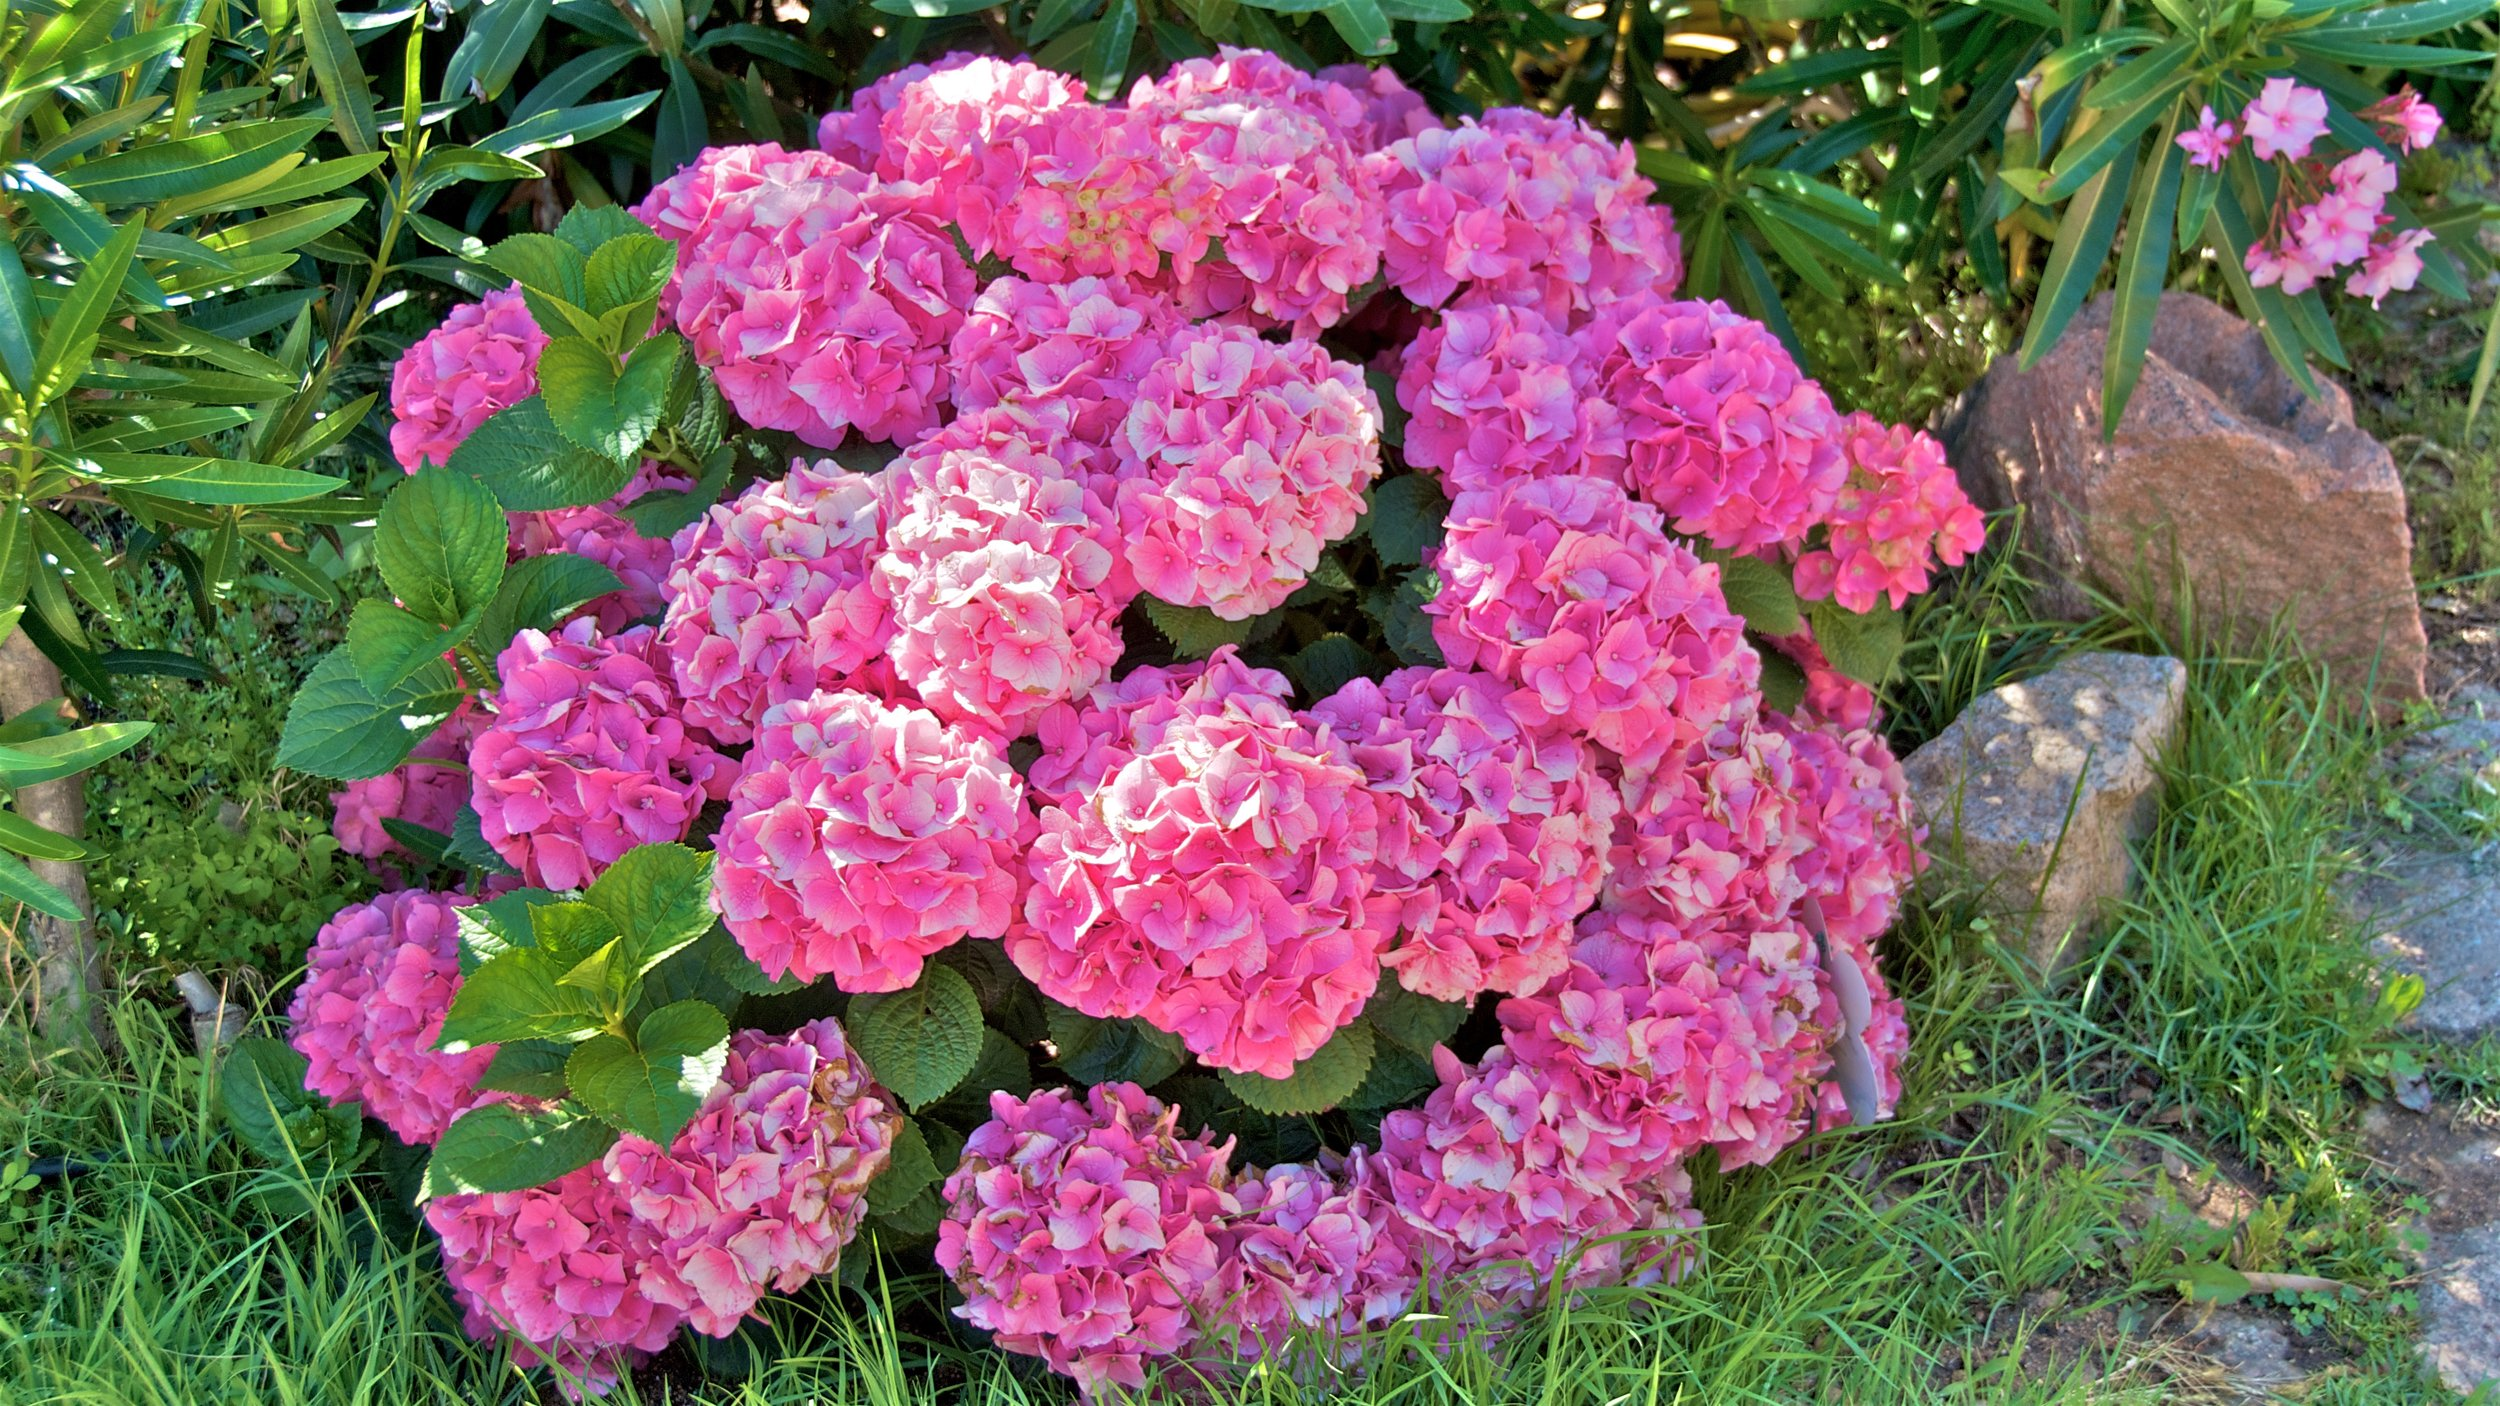 Hortensia, the signature flower of the property